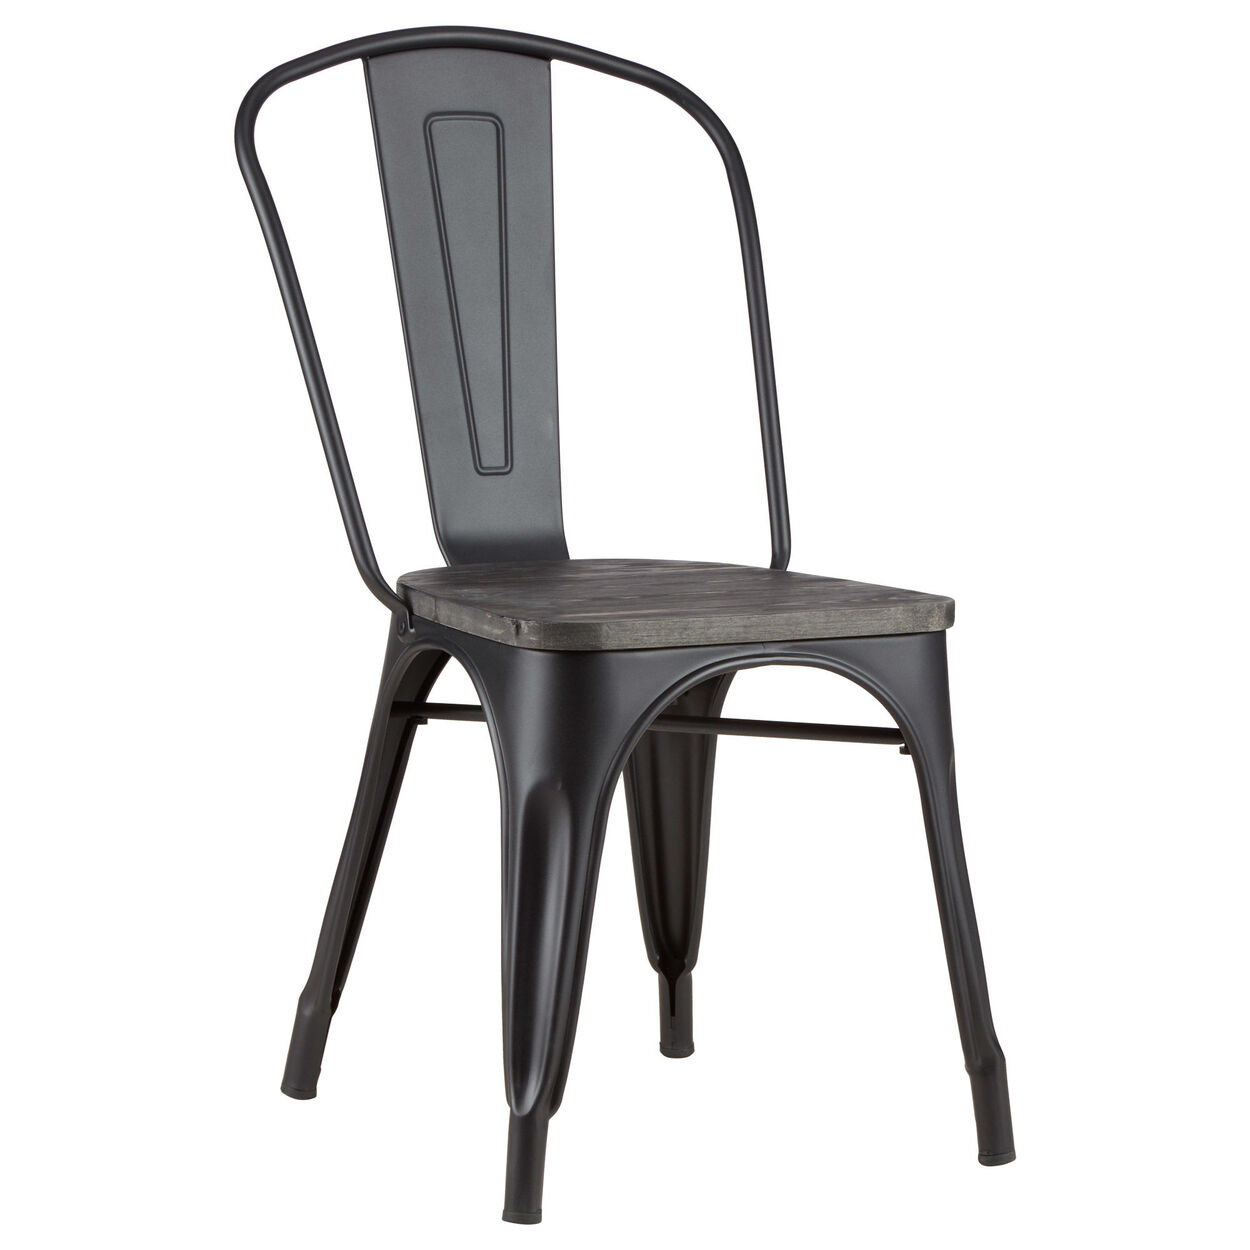 Solid Pine Wood and Metal Dining Chair